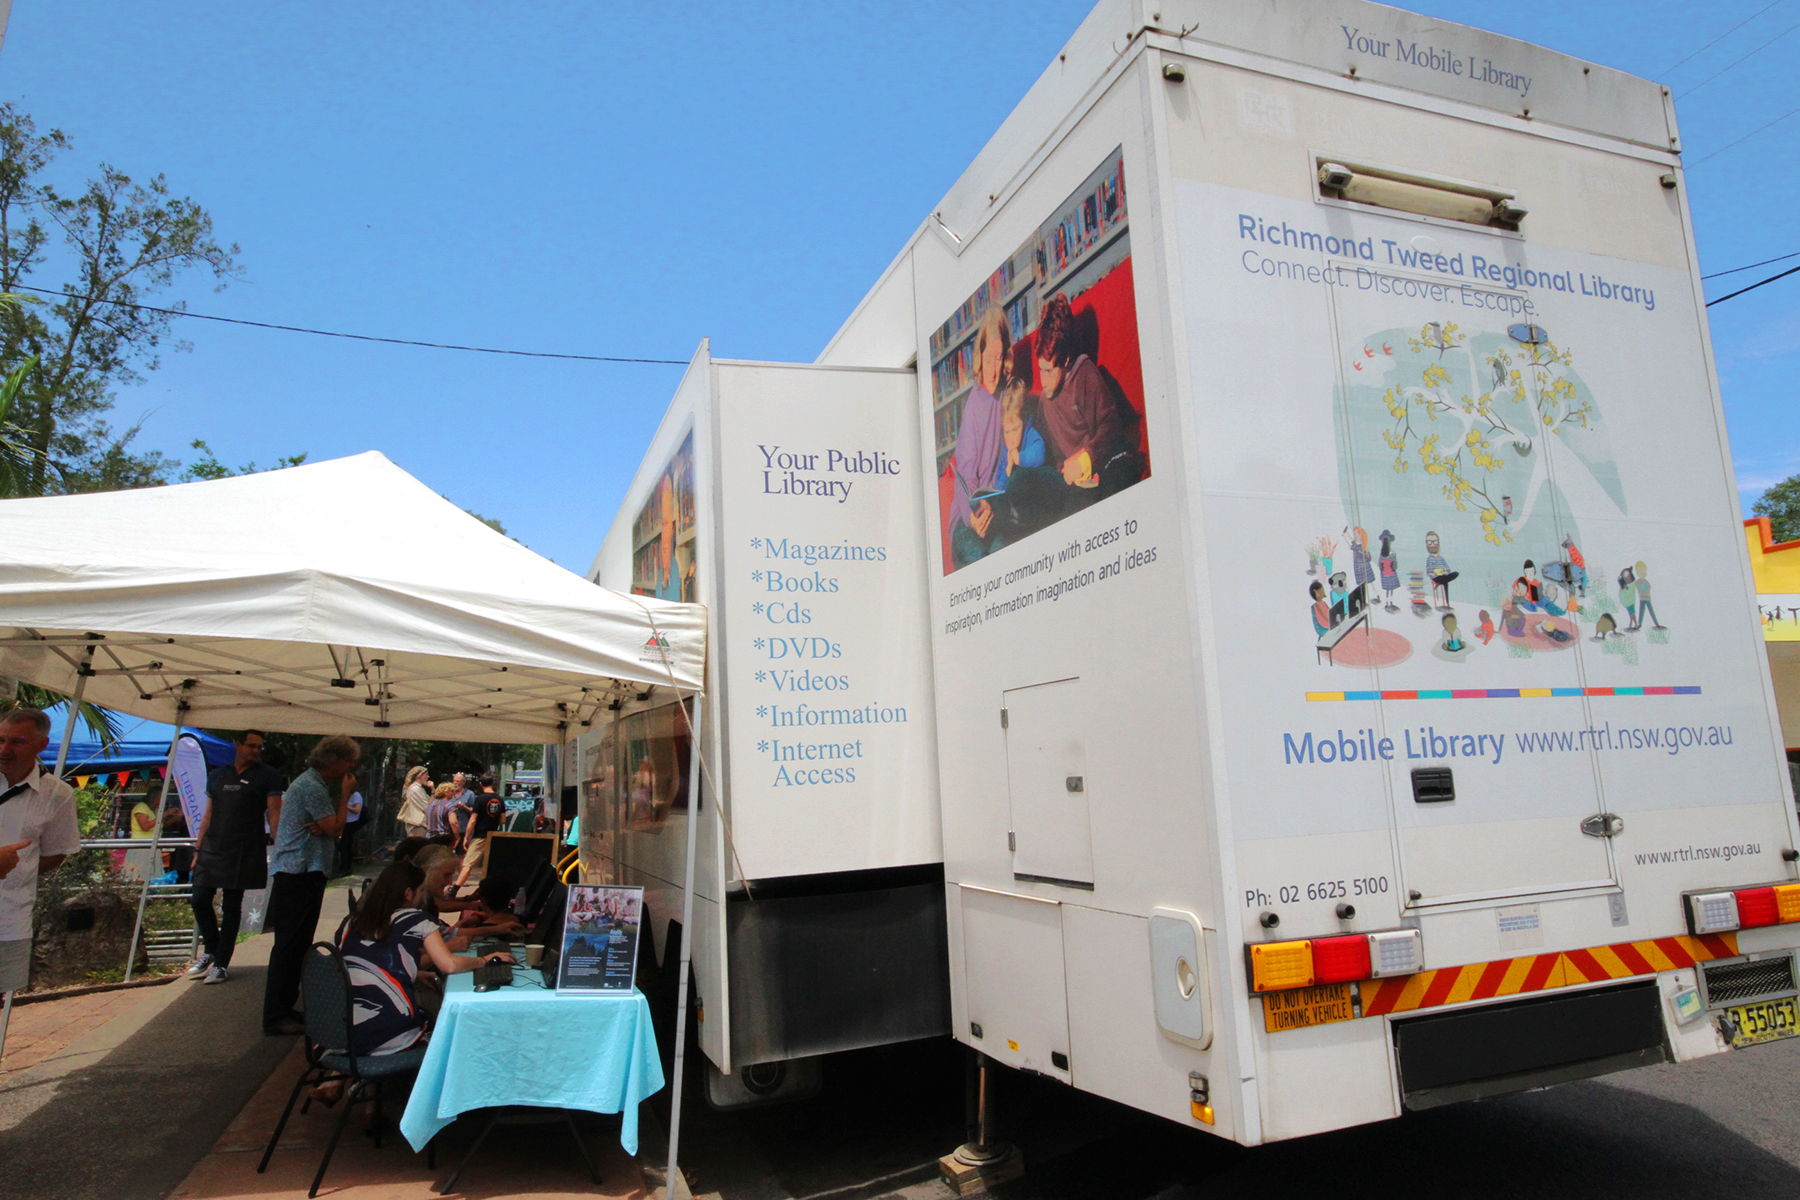 The Richmond Tweed Regional Library mobile library